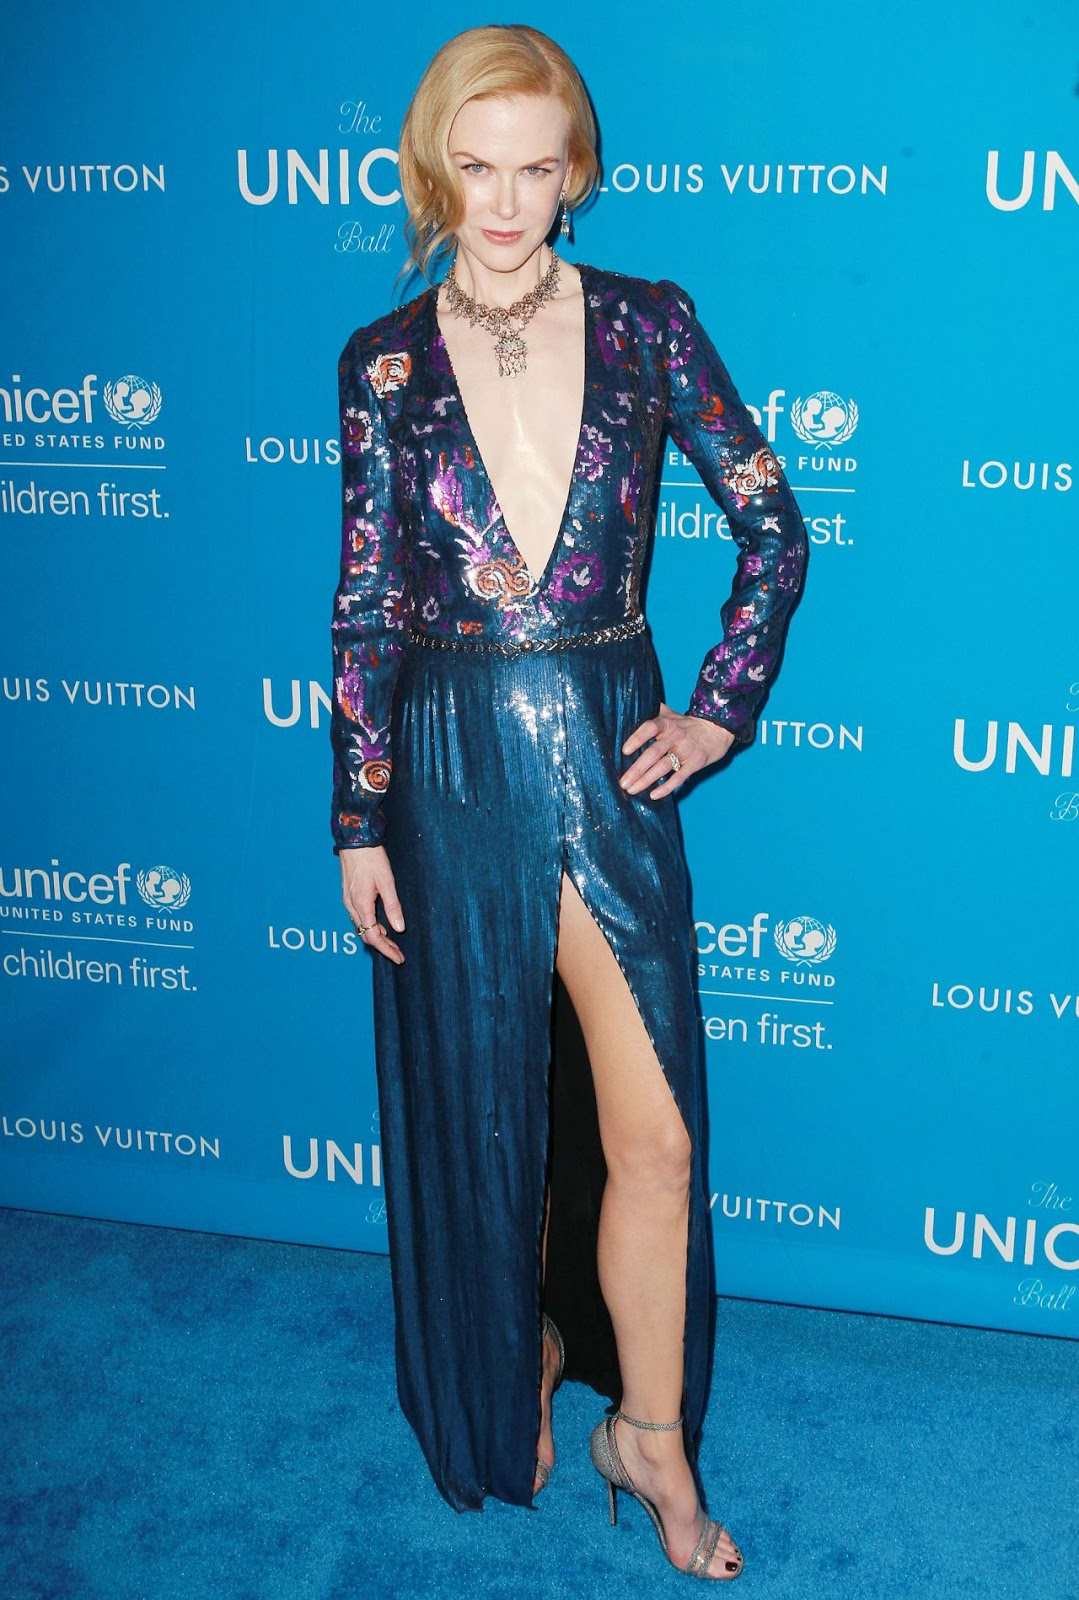 Nicole Kidman Dazzles in Fred Leighton at the UNICEF Ball‏